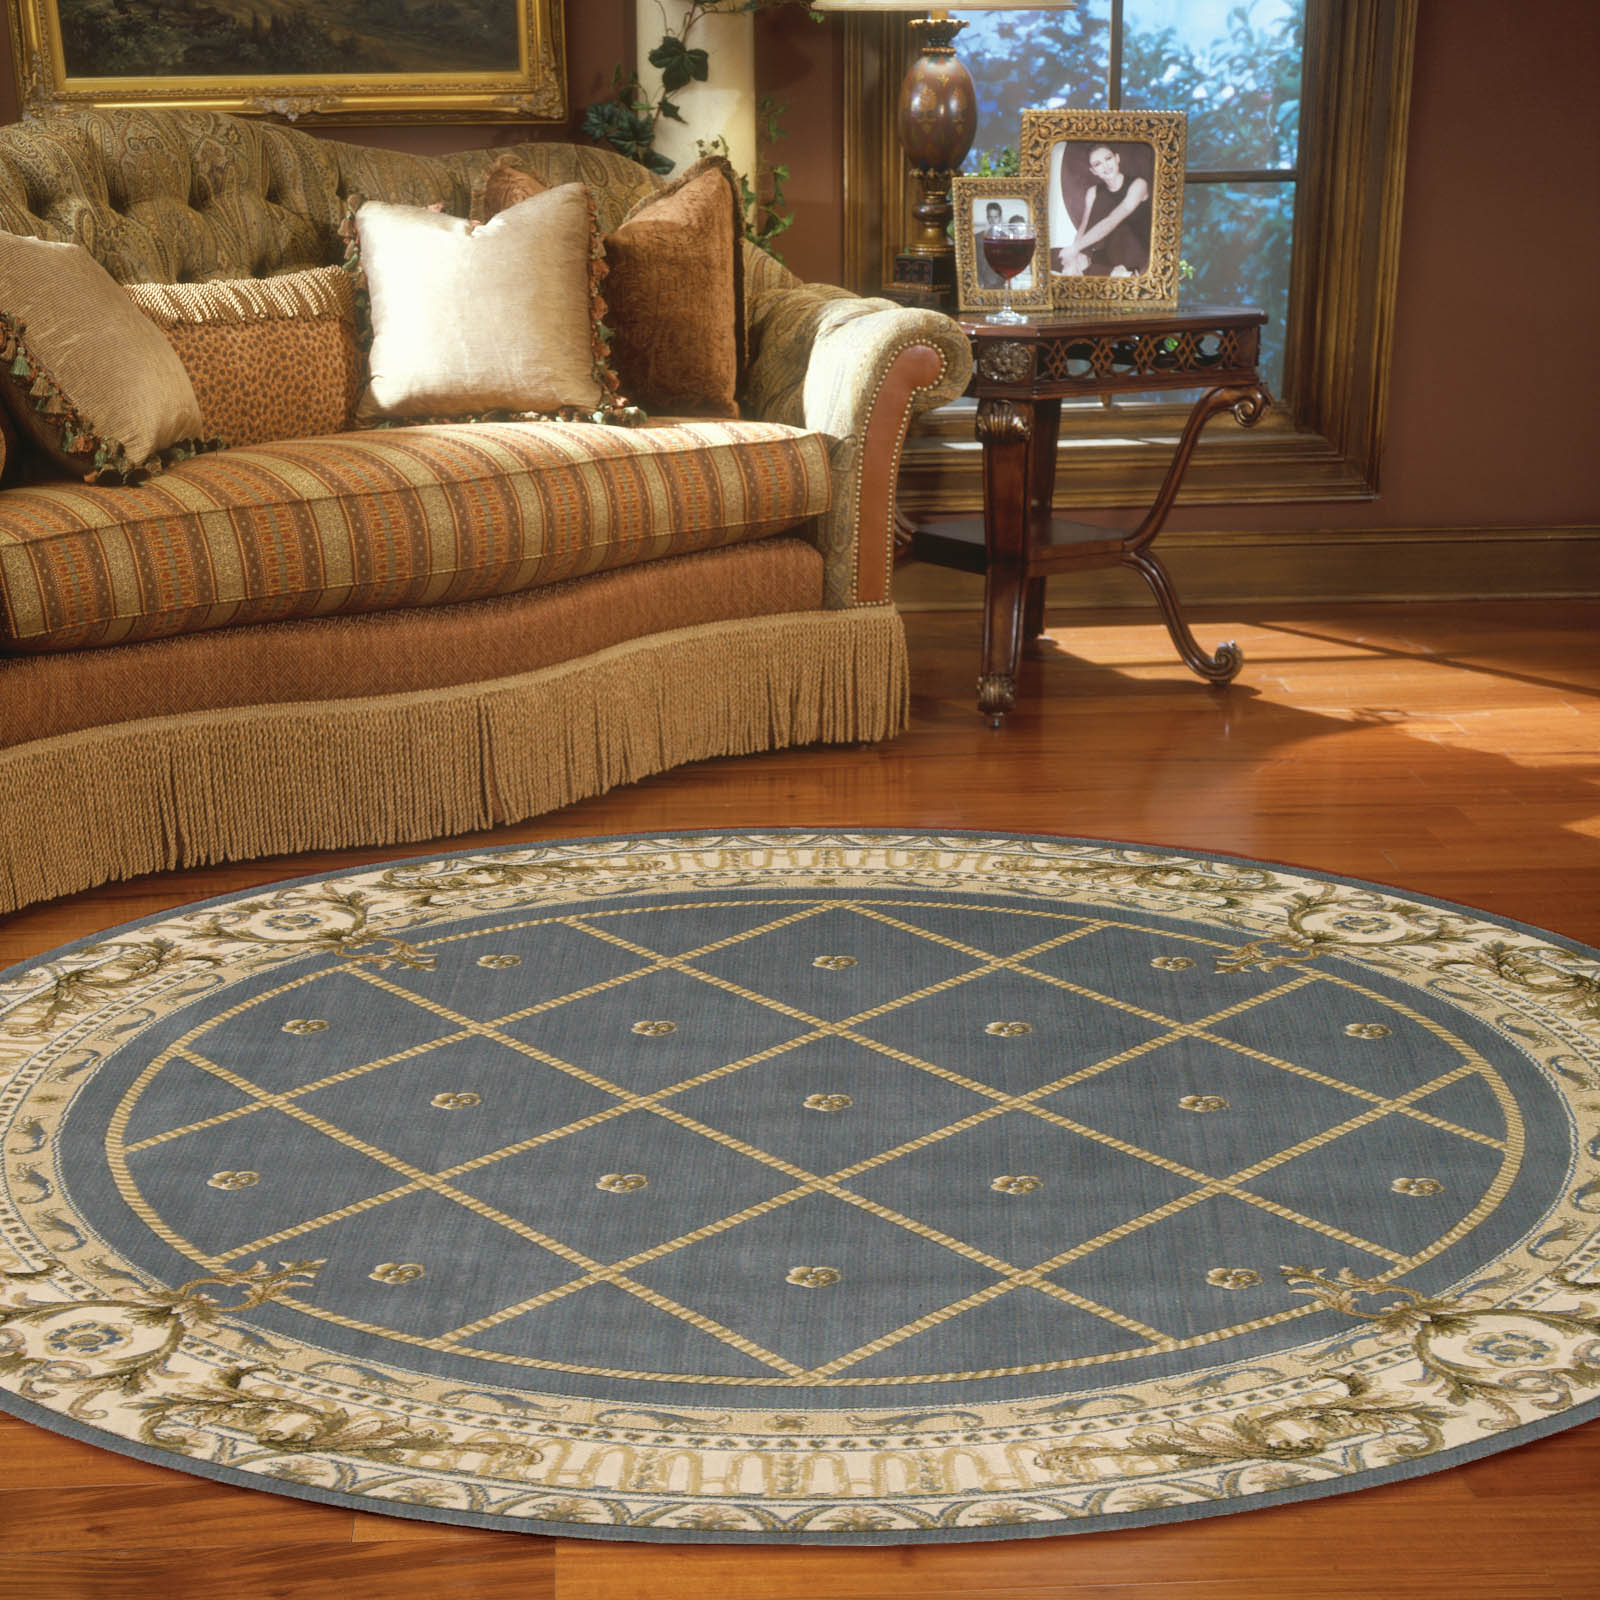 Ashton House Circular Rugs